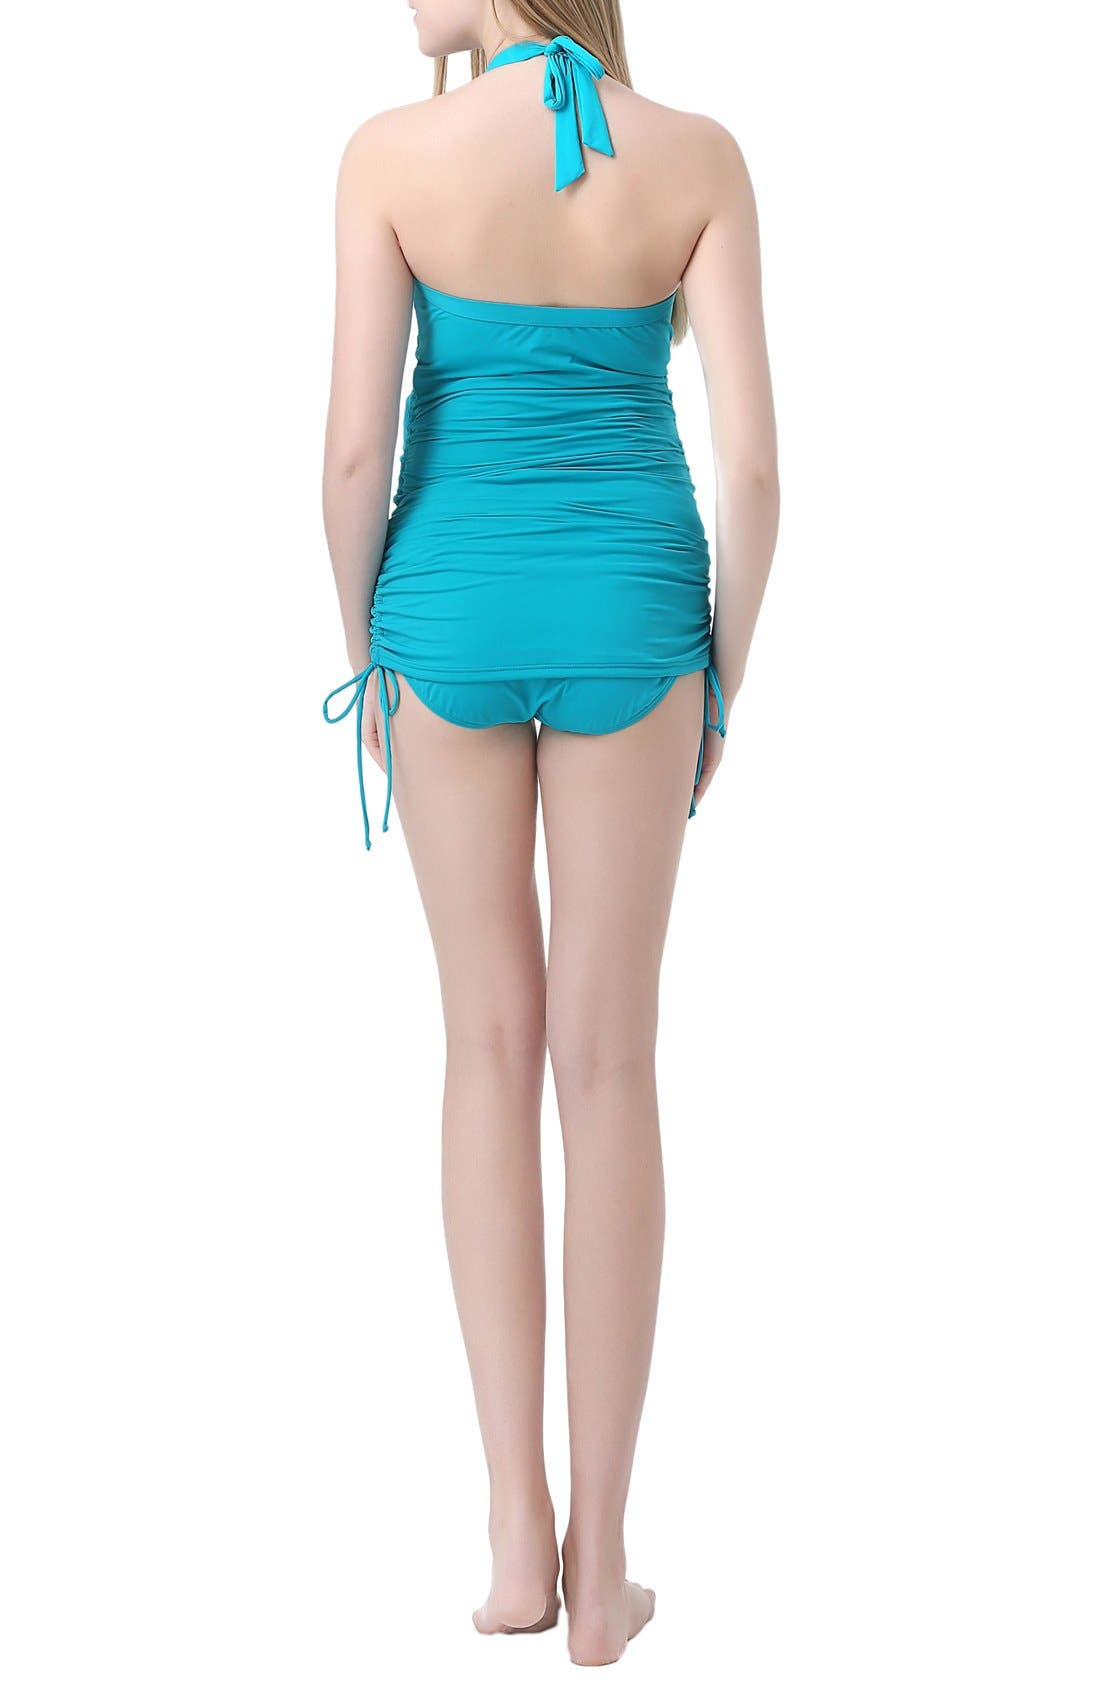 'Chloe' Maternity Two-Piece Tankini Swimsuit,                             Alternate thumbnail 2, color,                             440